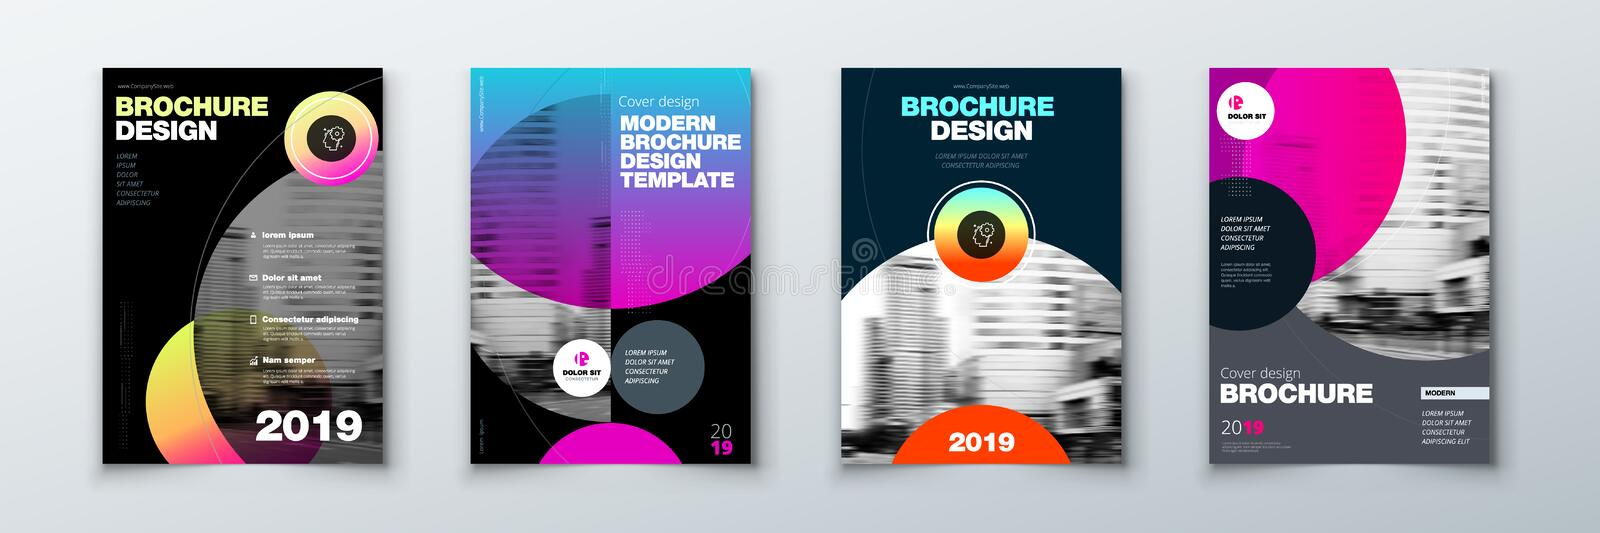 Bright circle Brochure cover design set. Template layout for annual report, magazine, catalog, flyer or booklet in A4 vector illustration